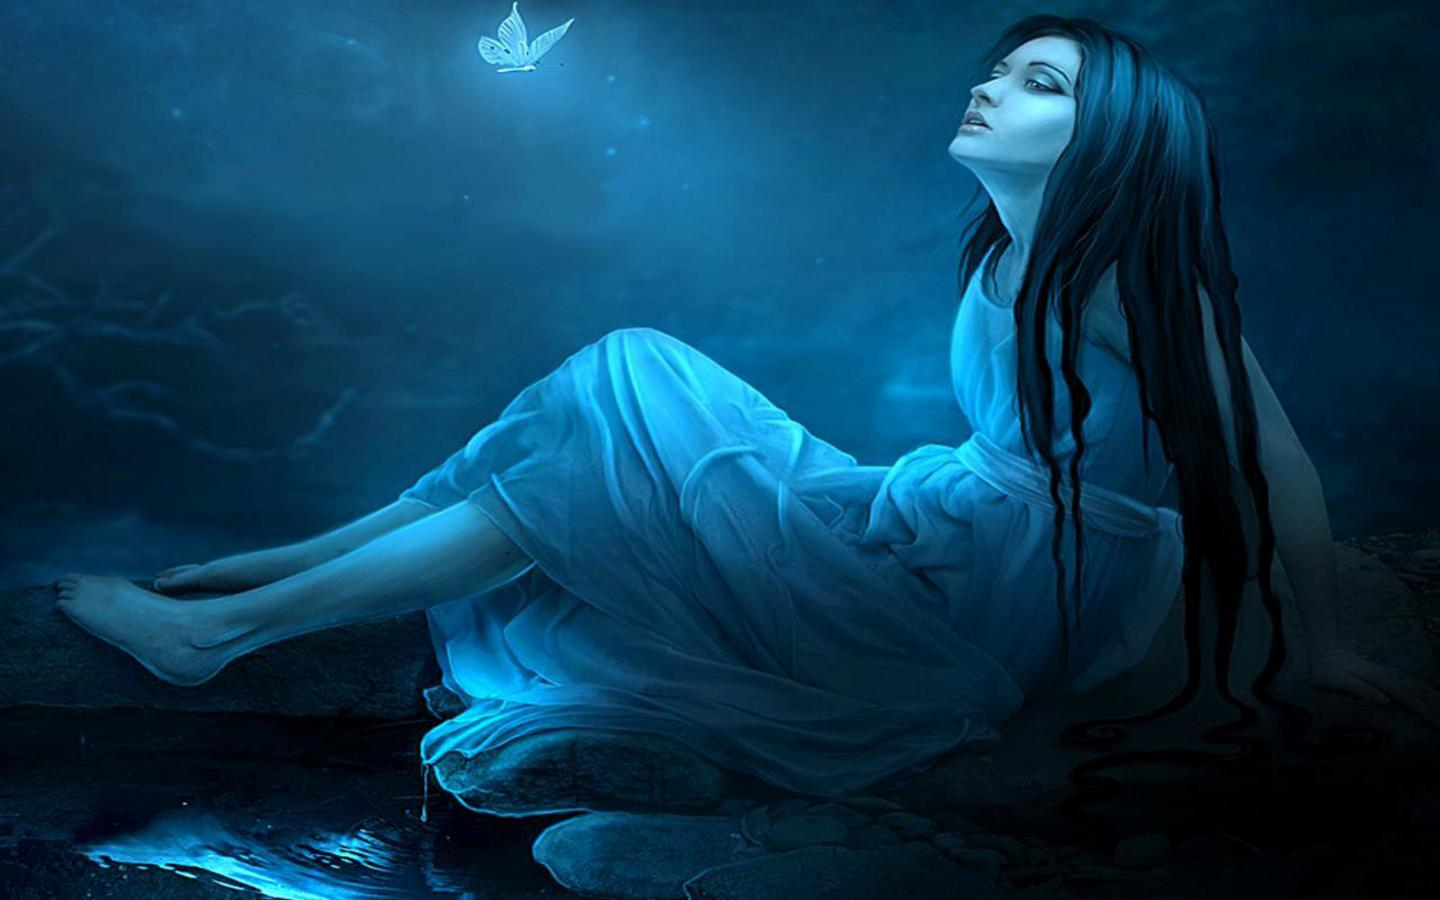 girls wallpapers blue fantasy women wallpaper beautiful fantasy women 1440x900